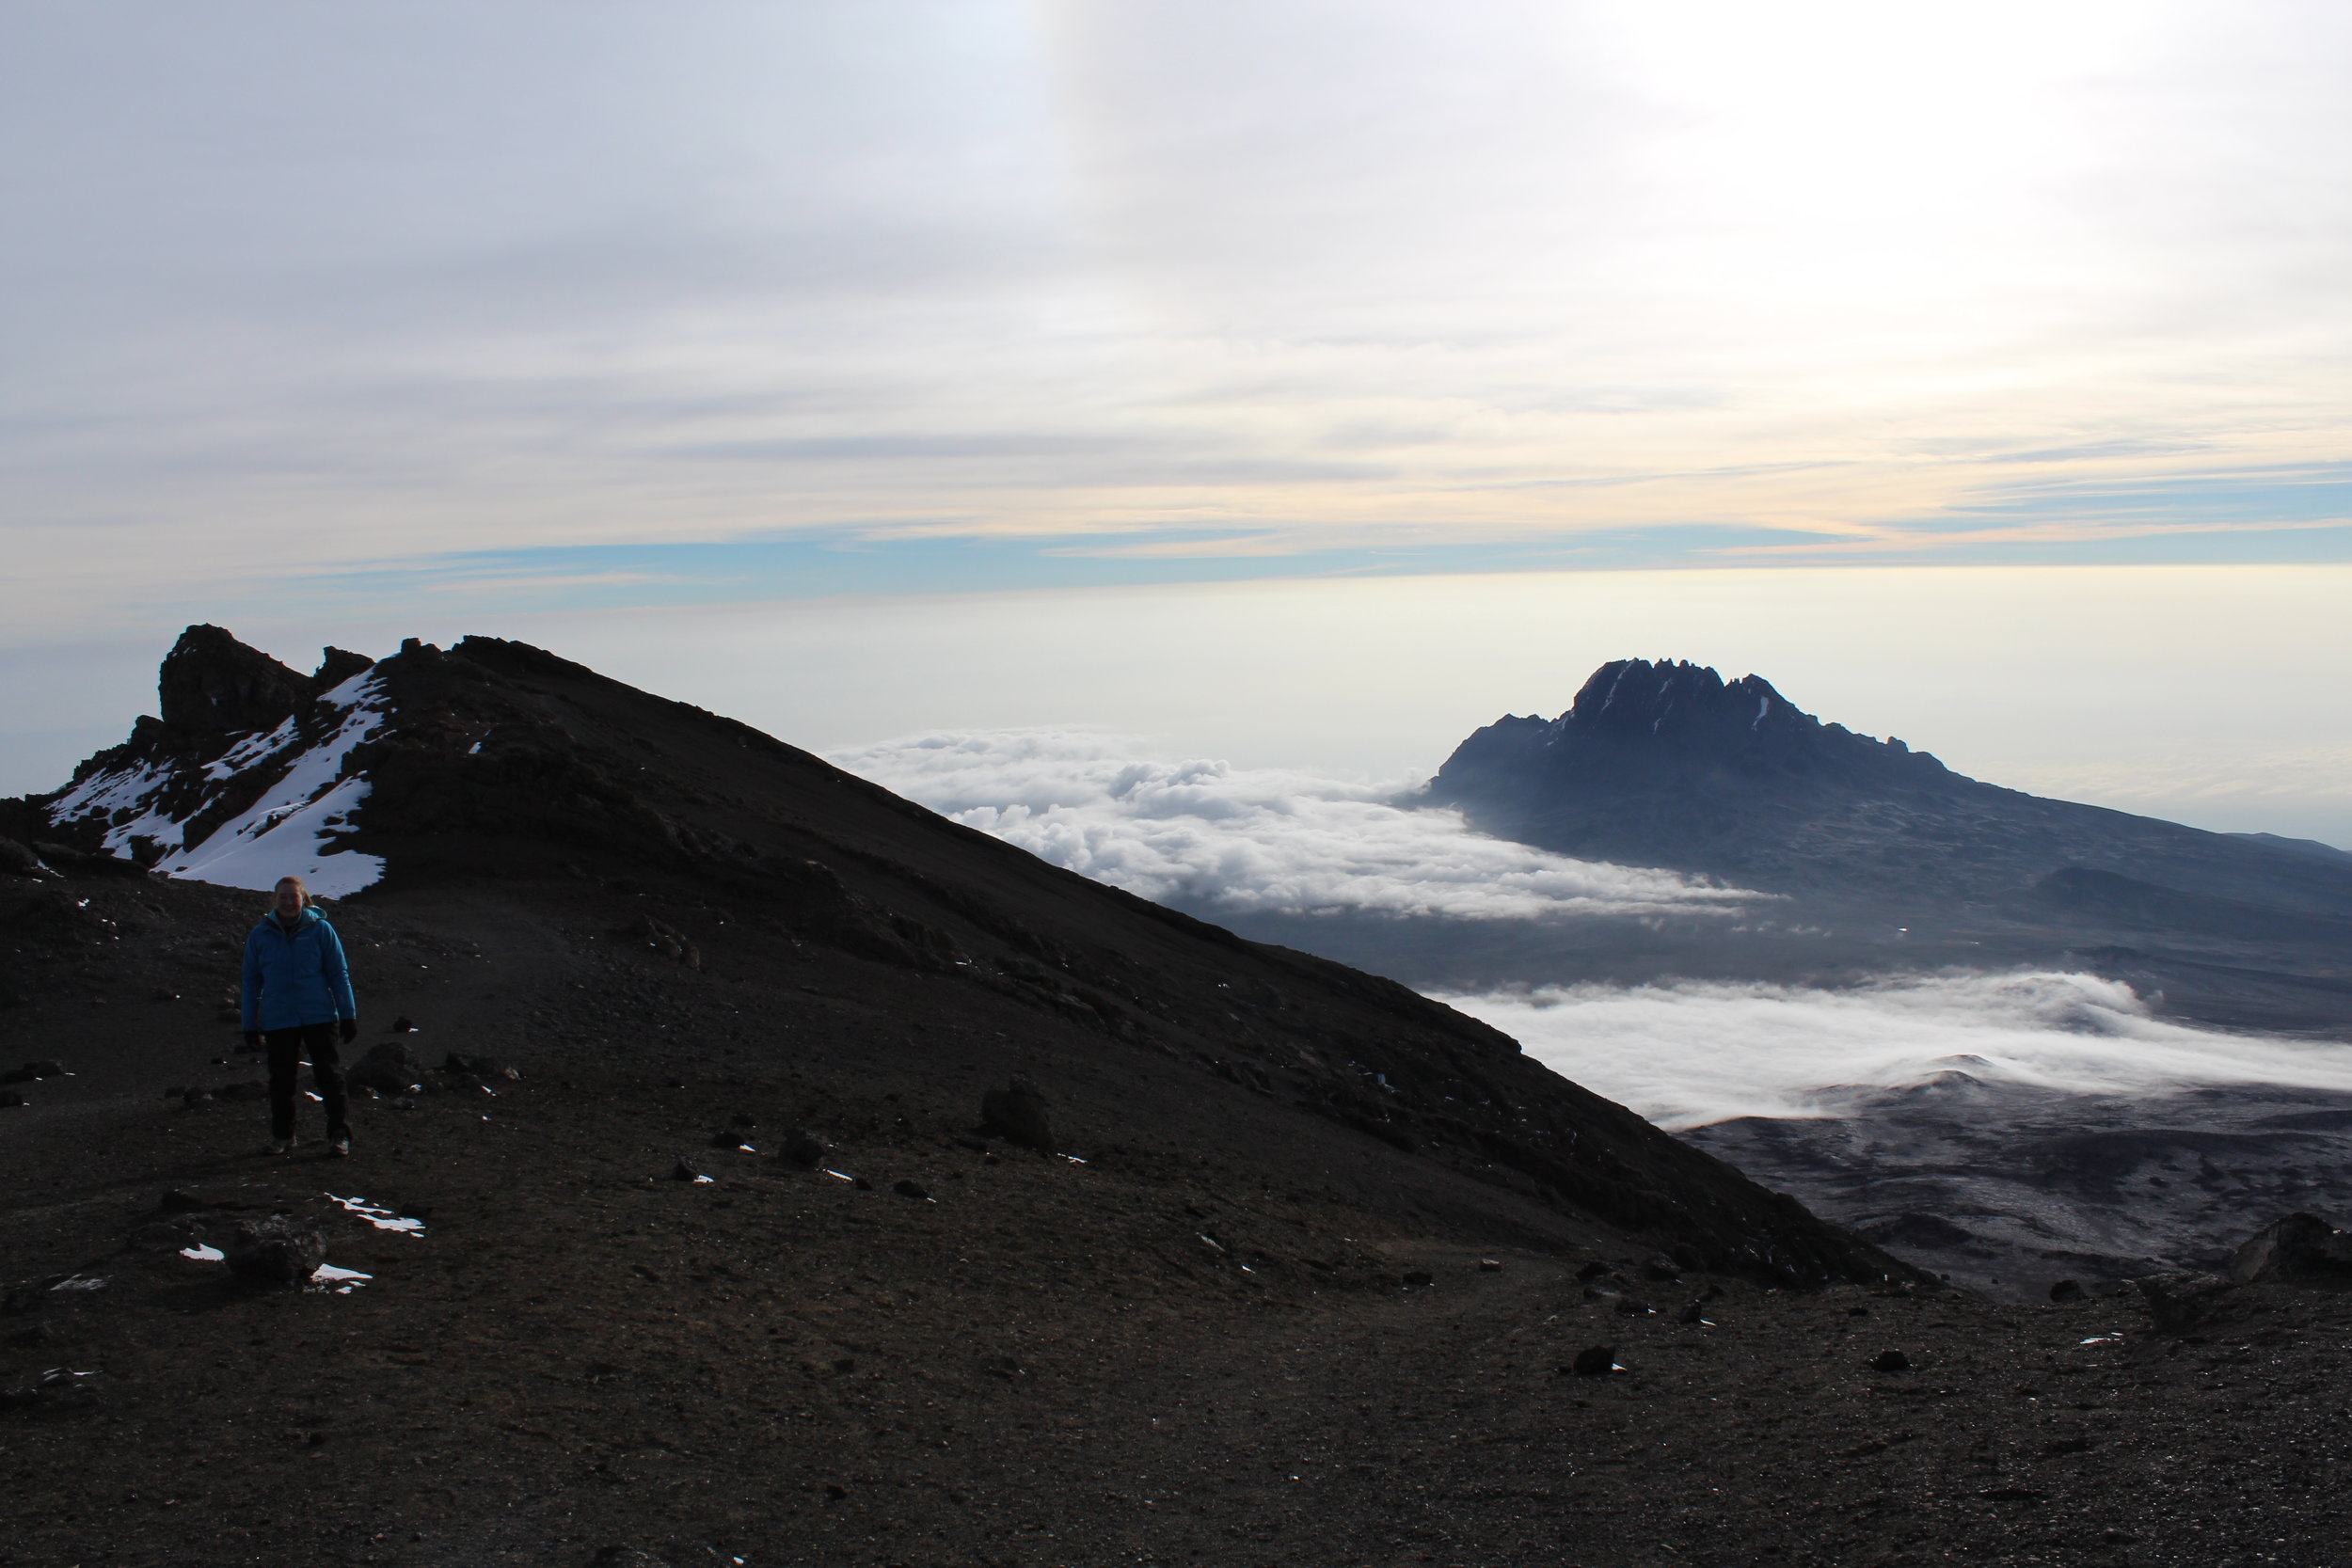 View from the summit of Kilimanjaro